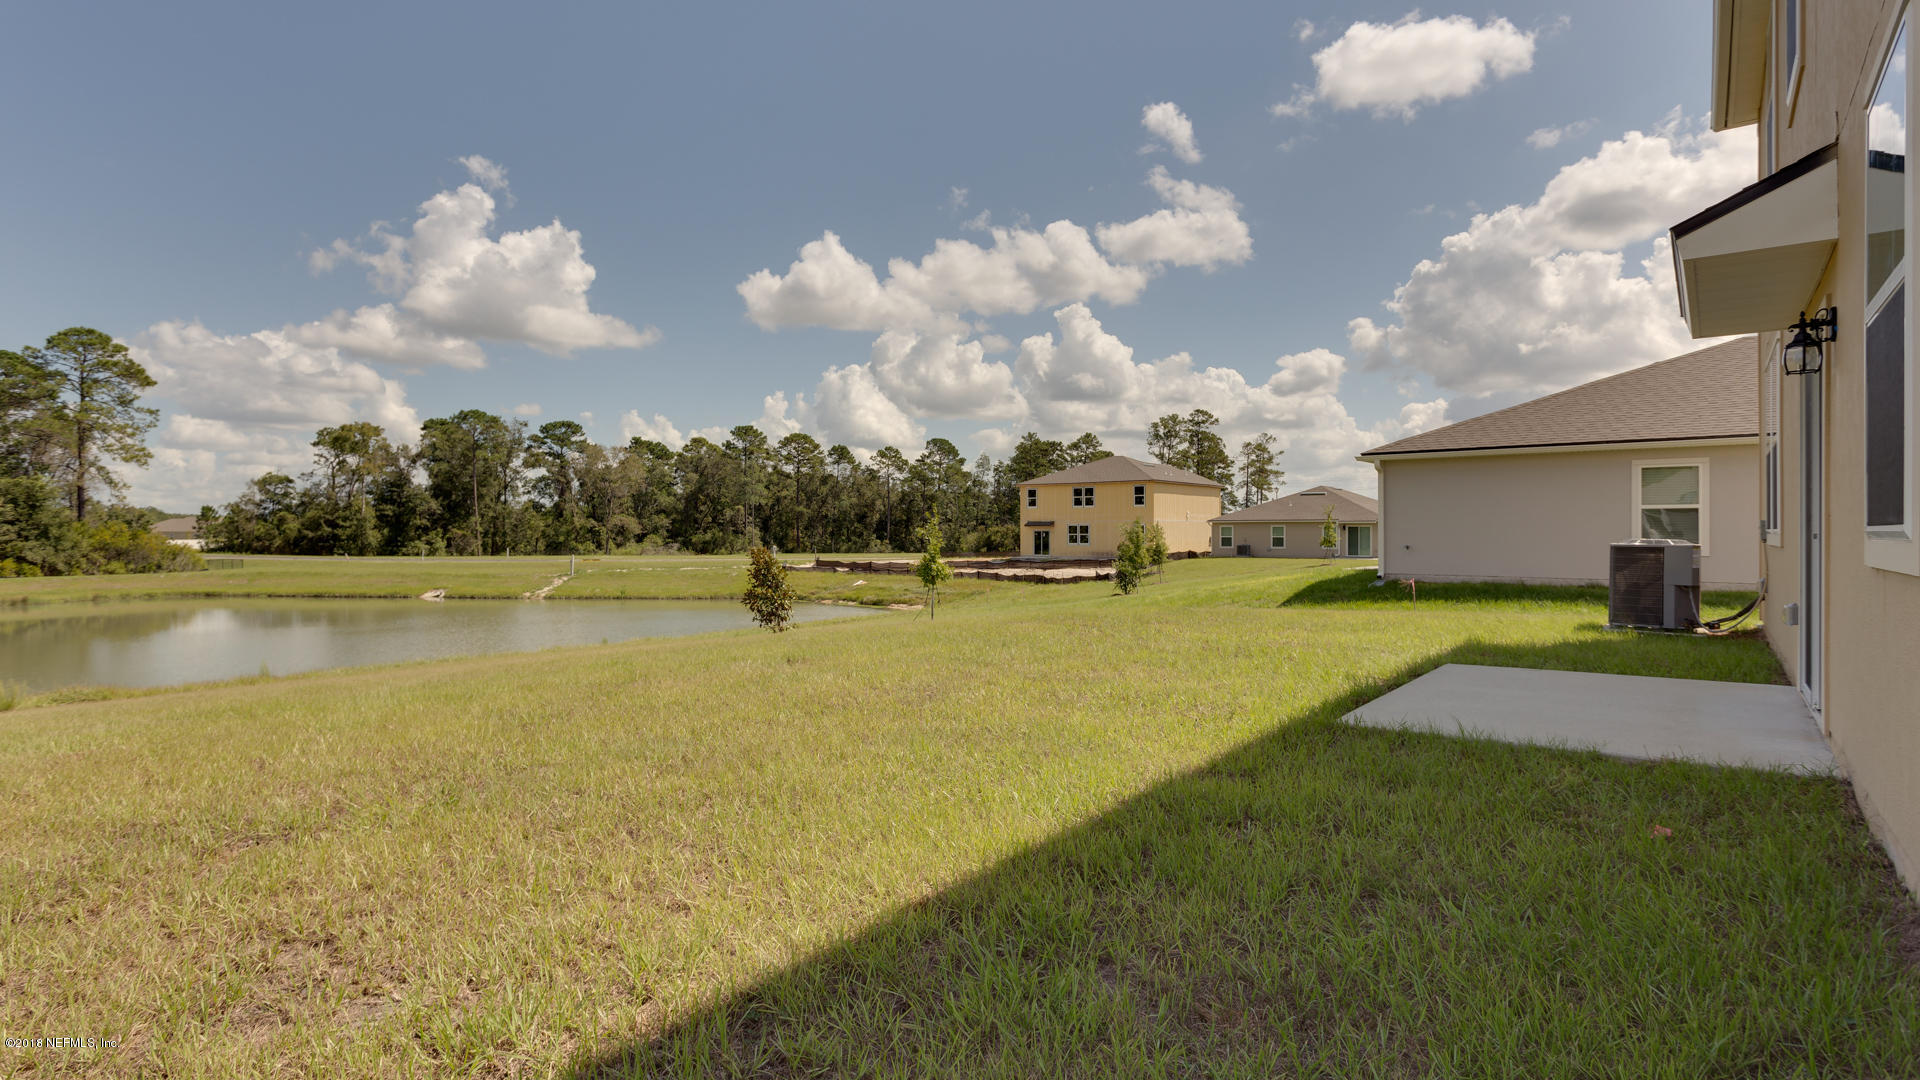 1830 BLACKWATER, MIDDLEBURG, FLORIDA 32068-8807, 4 Bedrooms Bedrooms, ,2 BathroomsBathrooms,Residential - single family,For sale,BLACKWATER,921573